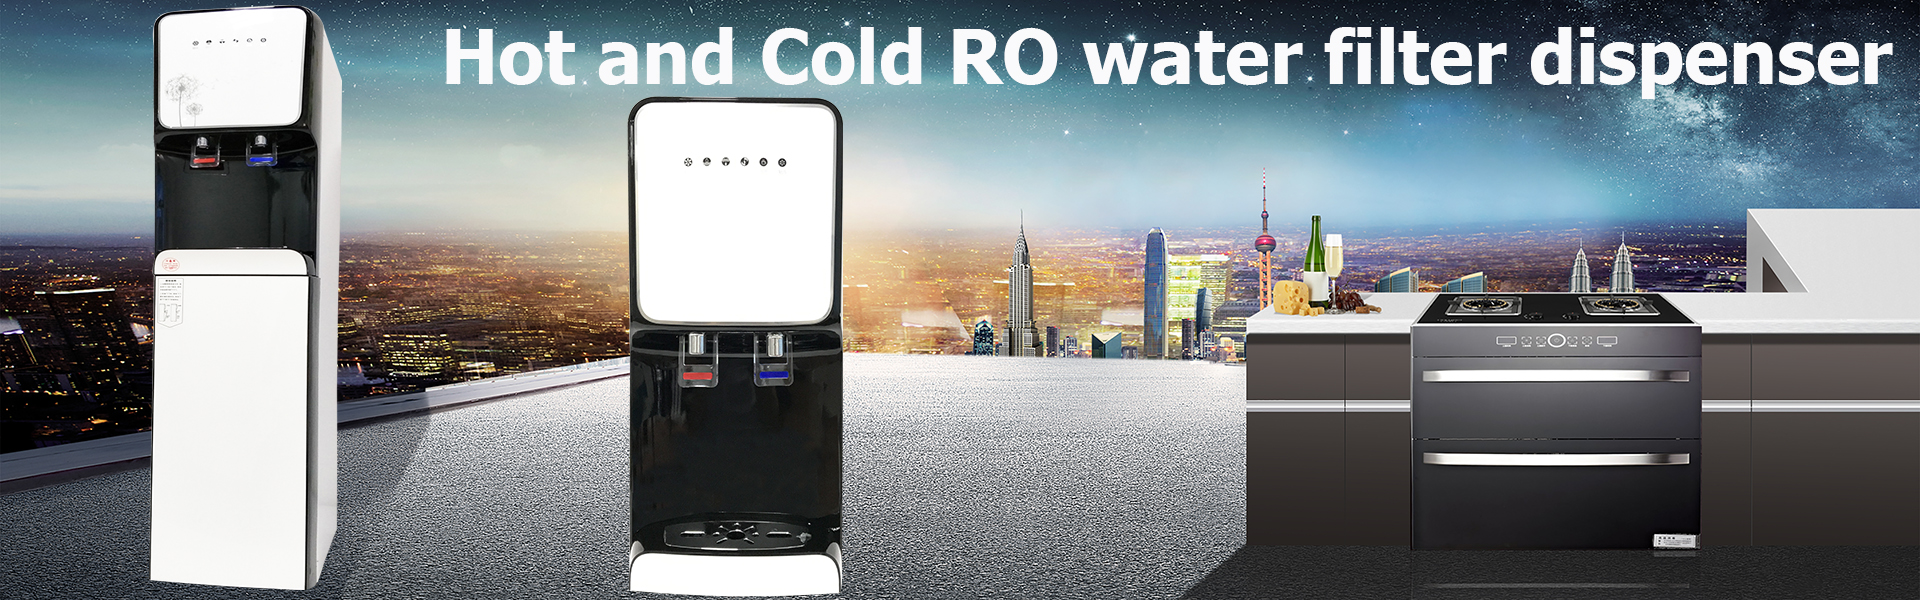 Hot and cold ro water filter dispenser